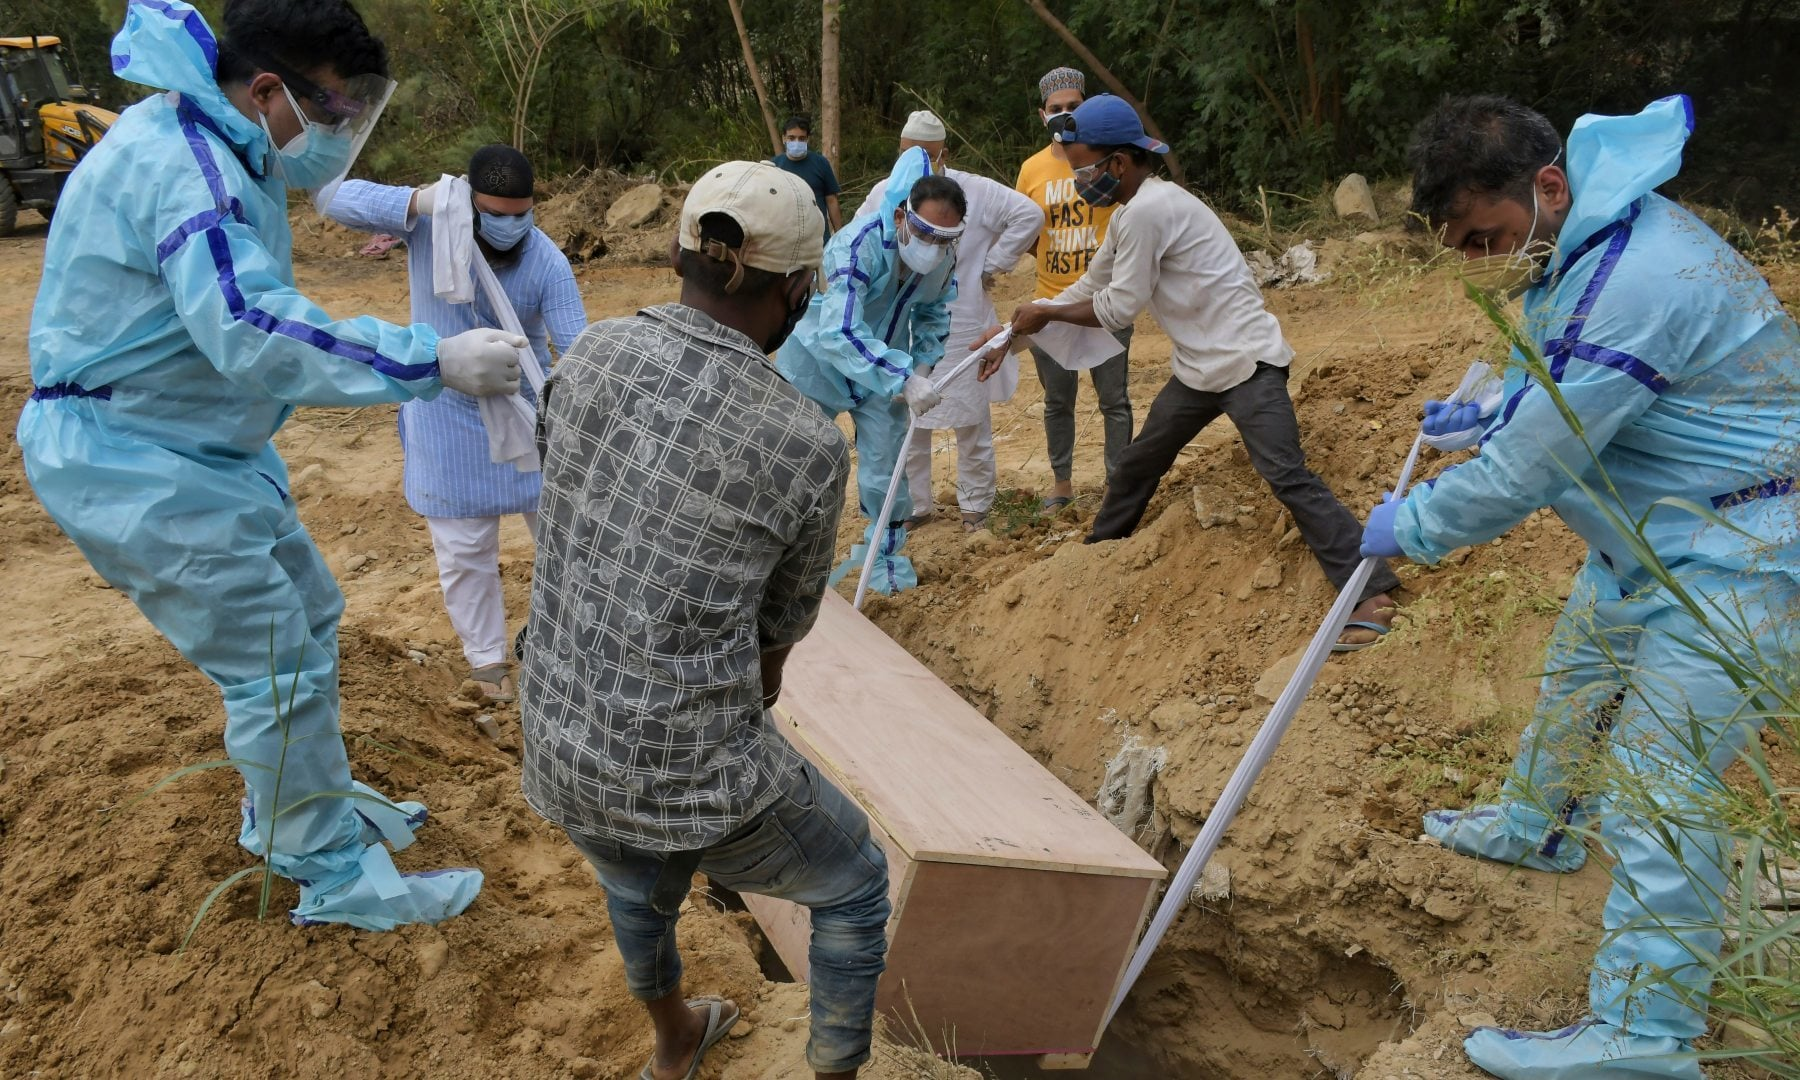 Relatives bury the body of a Covid-19 victim at a graveyard in New Delhi, India, Tuesday, May 4. — AP